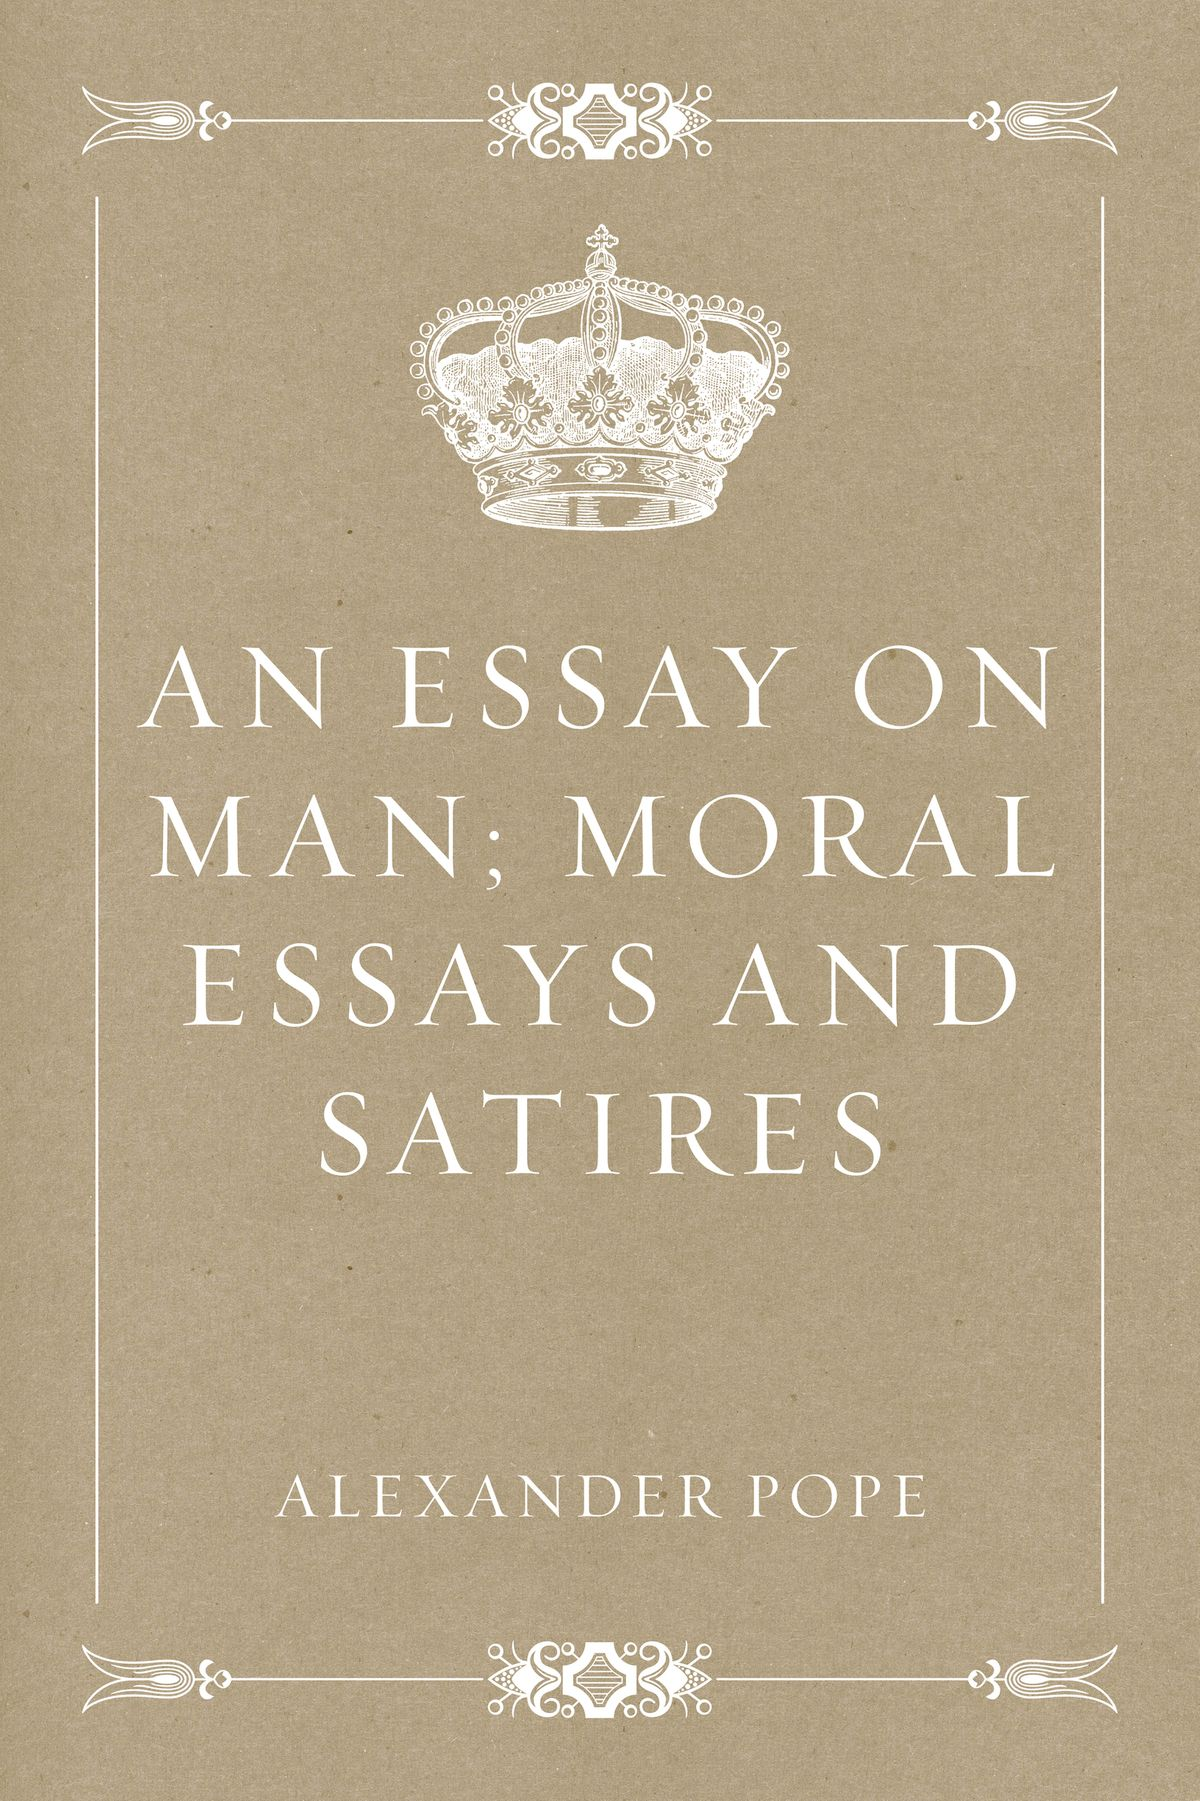 009 An Essay On Man Moral Essays And Satires Alexander Pope Awesome Epistle 2 Analysis Shmoop 1 Full